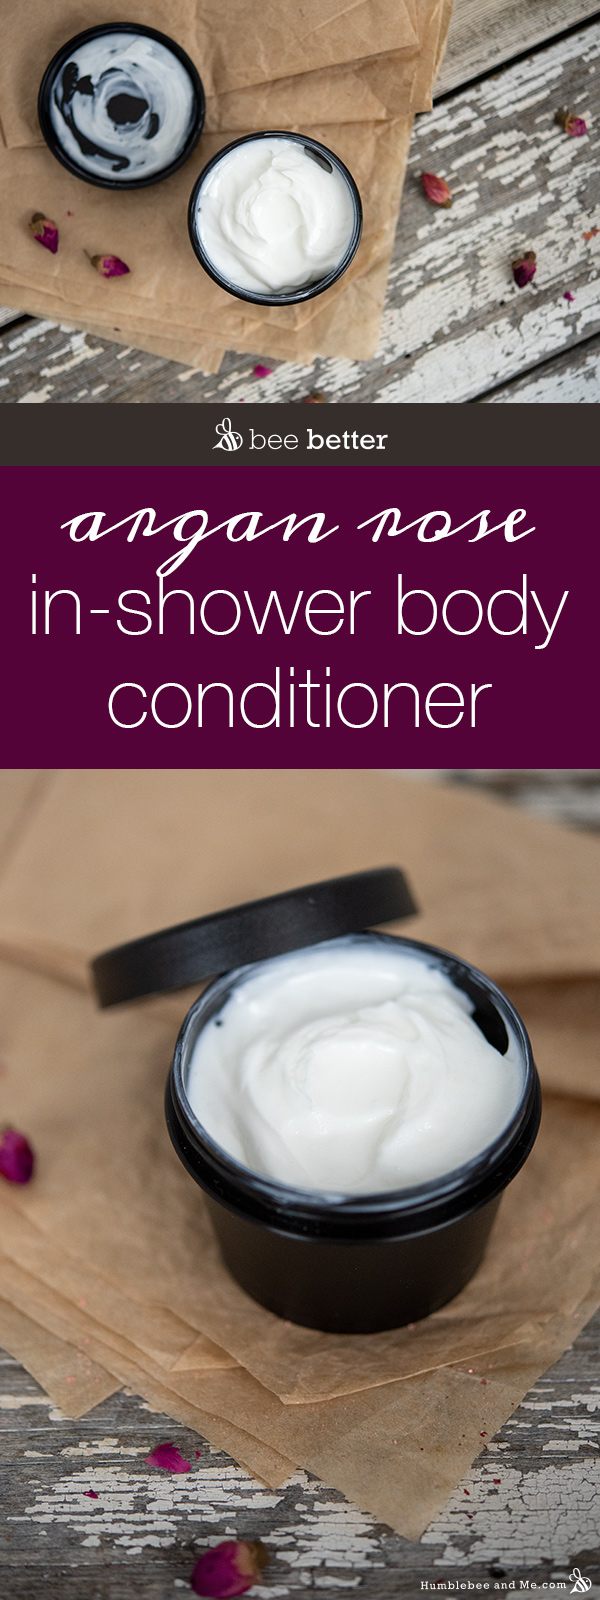 How to Make Argan Rose In-Shower Body Conditioner